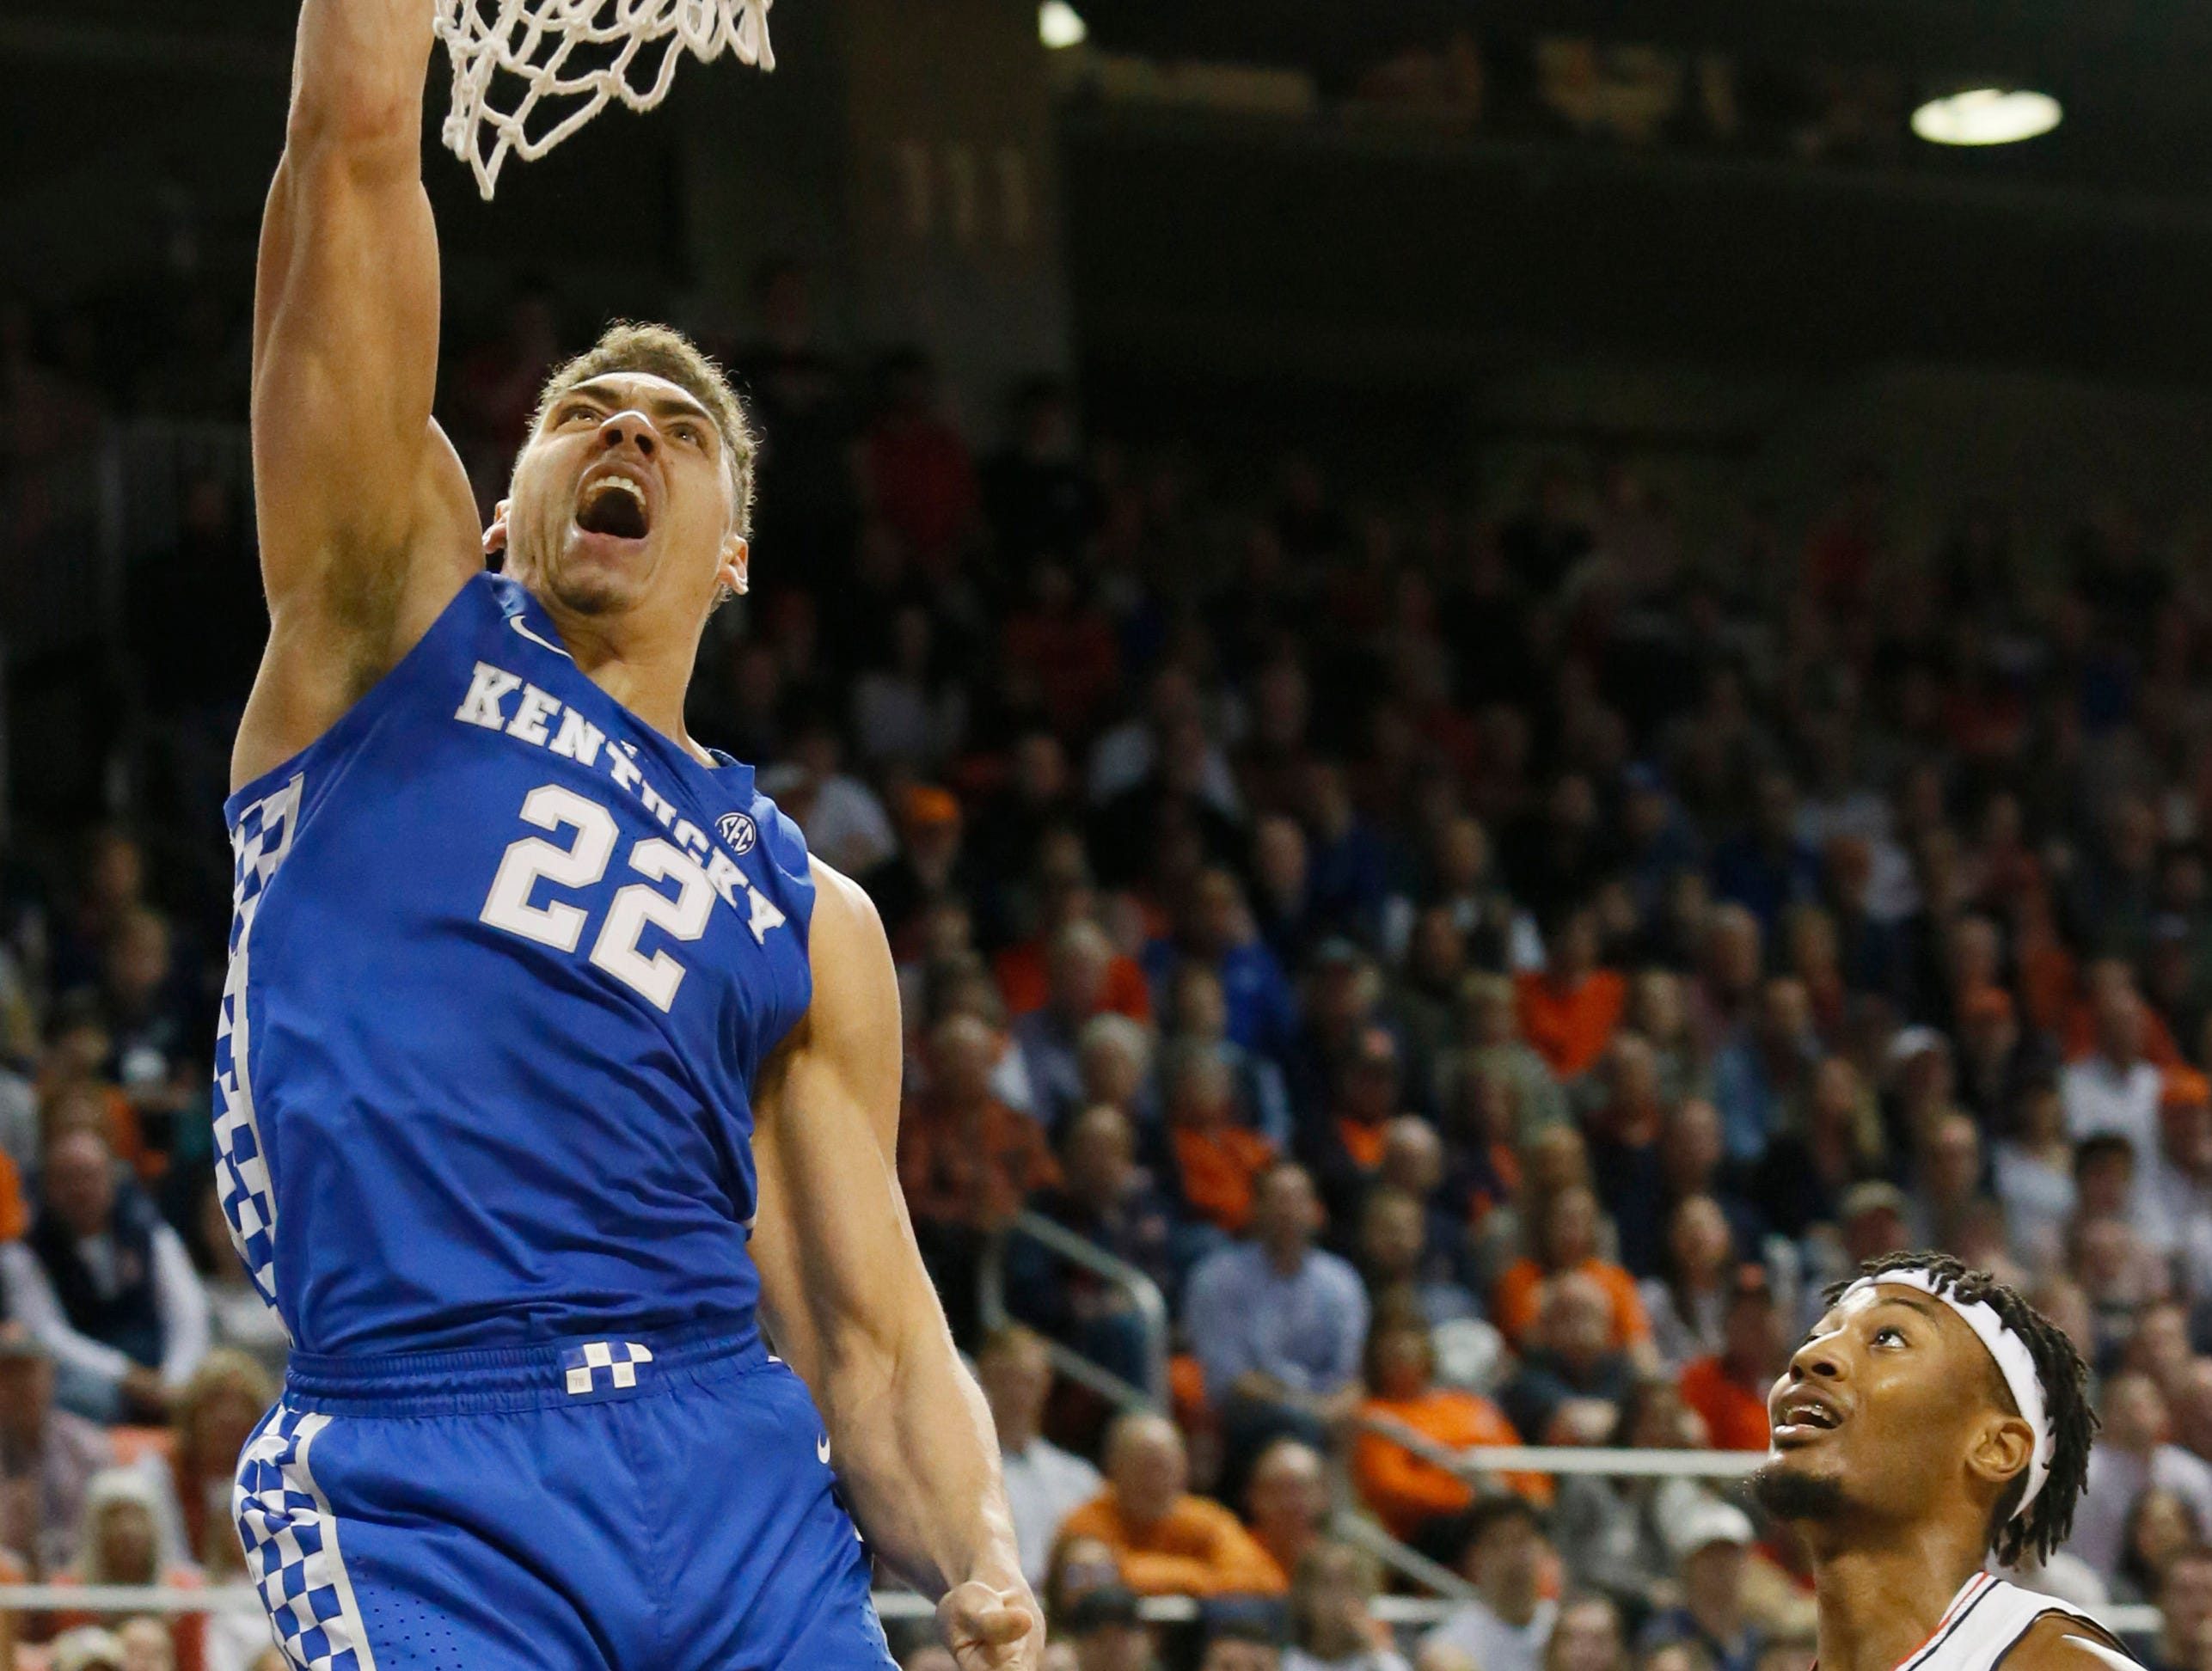 Jan 19, 2019; Auburn, AL, USA; Kentucky Wildcats forward Reid Travis (22) makes a shot against the Auburn Tigers during the first half at Auburn Arena. Mandatory Credit: John Reed-USA TODAY Sports